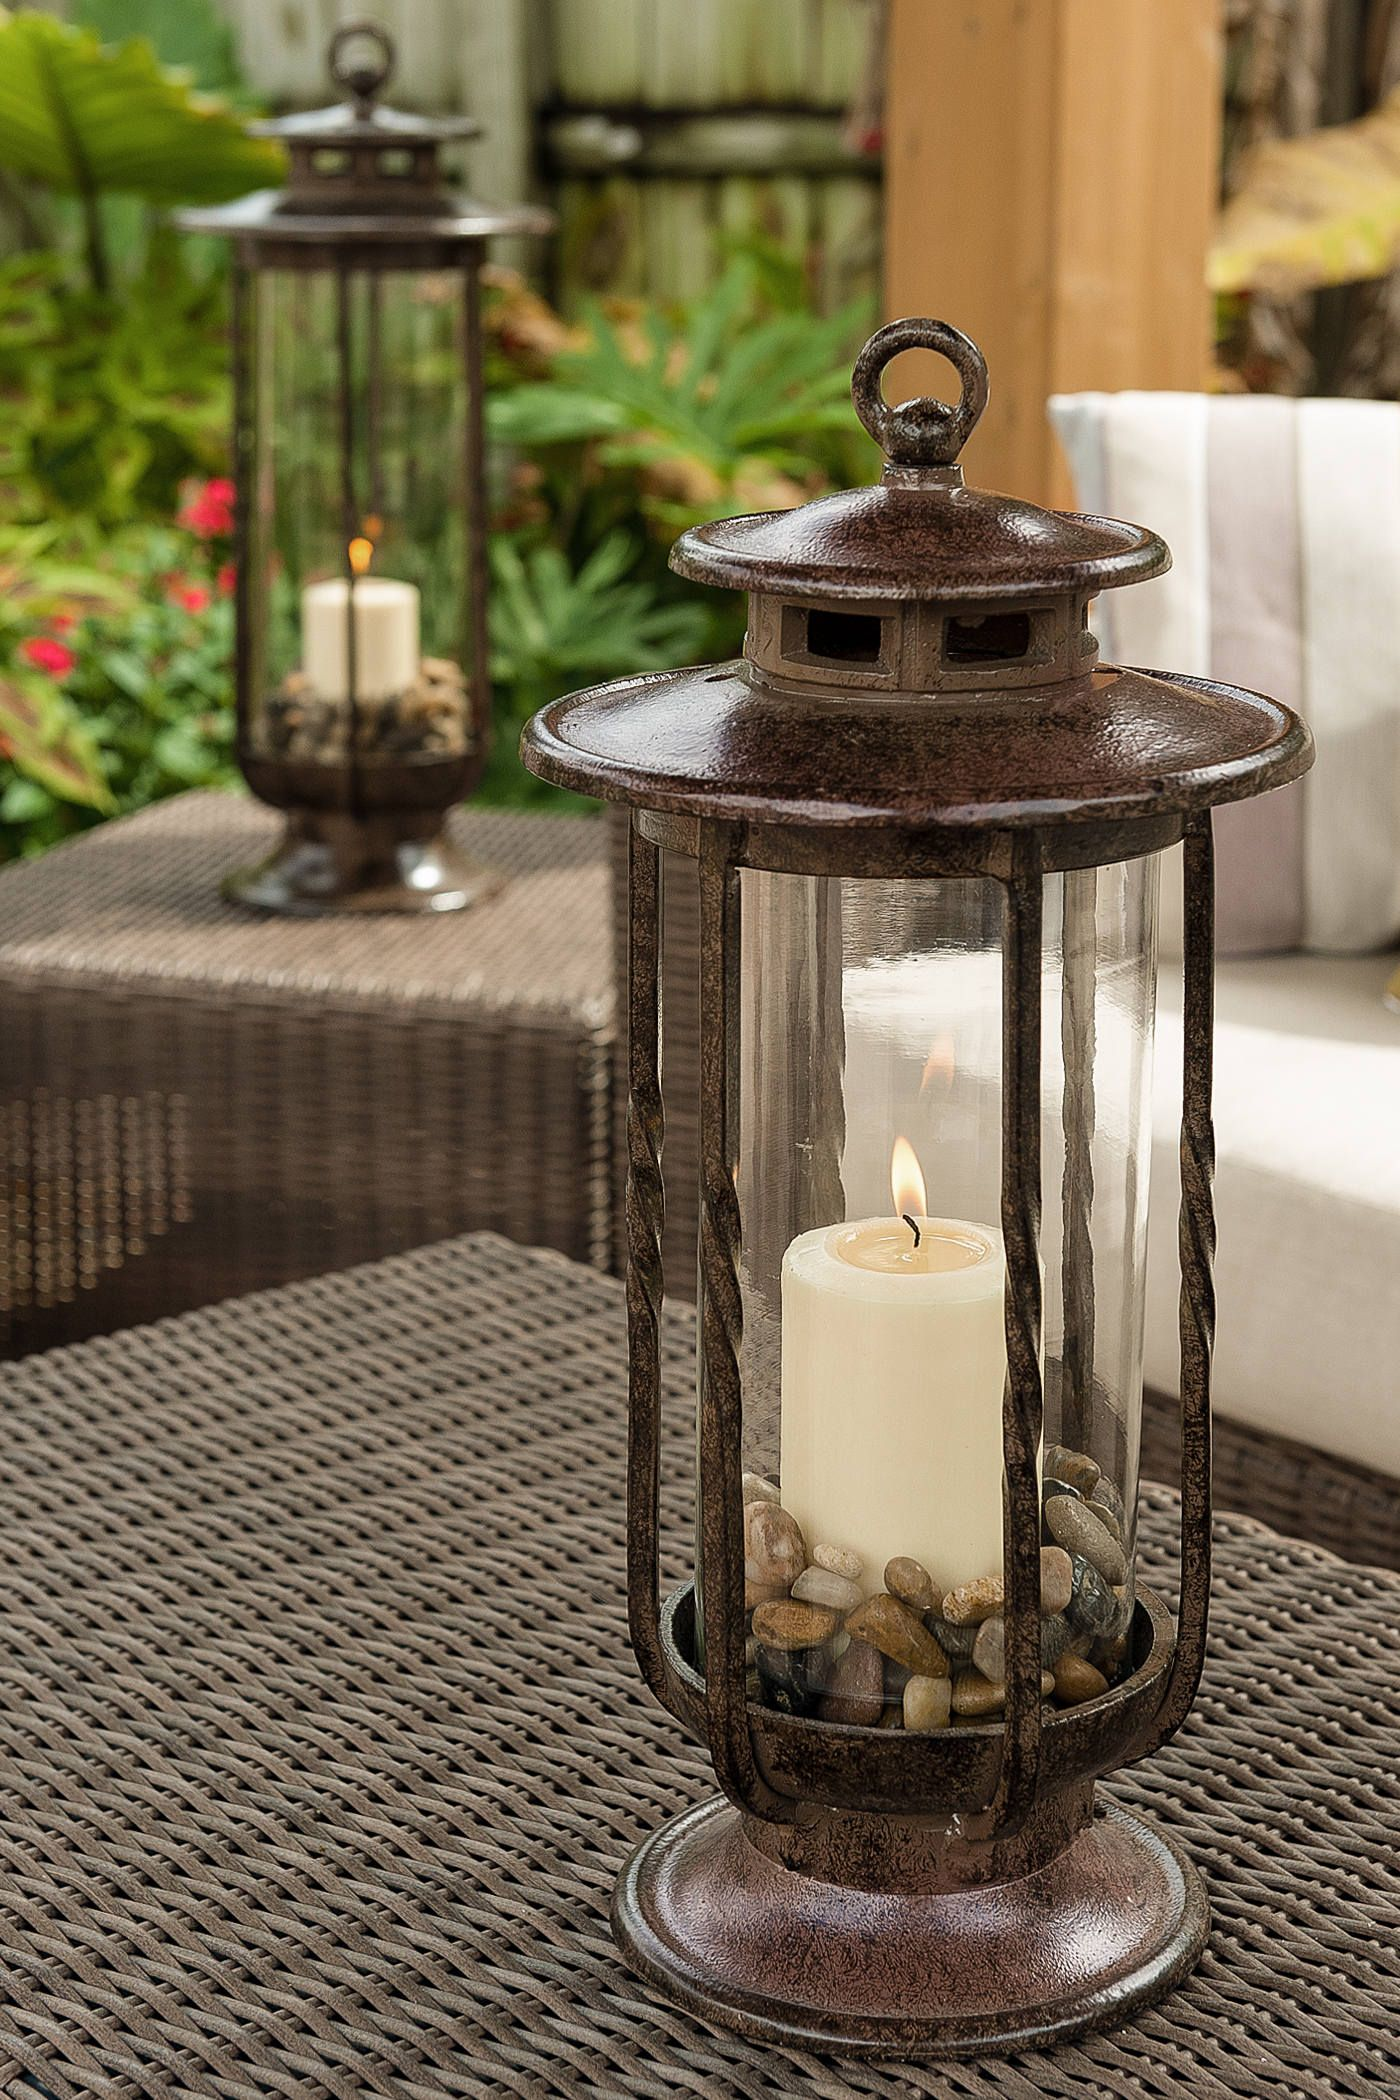 H Potter Large Decorative Hurricane Lantern Glass Candle Holder Cast Iron Rustic Indoor Outdoor Lighting H Potter Pool Patio Decorative Hurricane Lantern Lantern Candle Decor Candle Lanterns